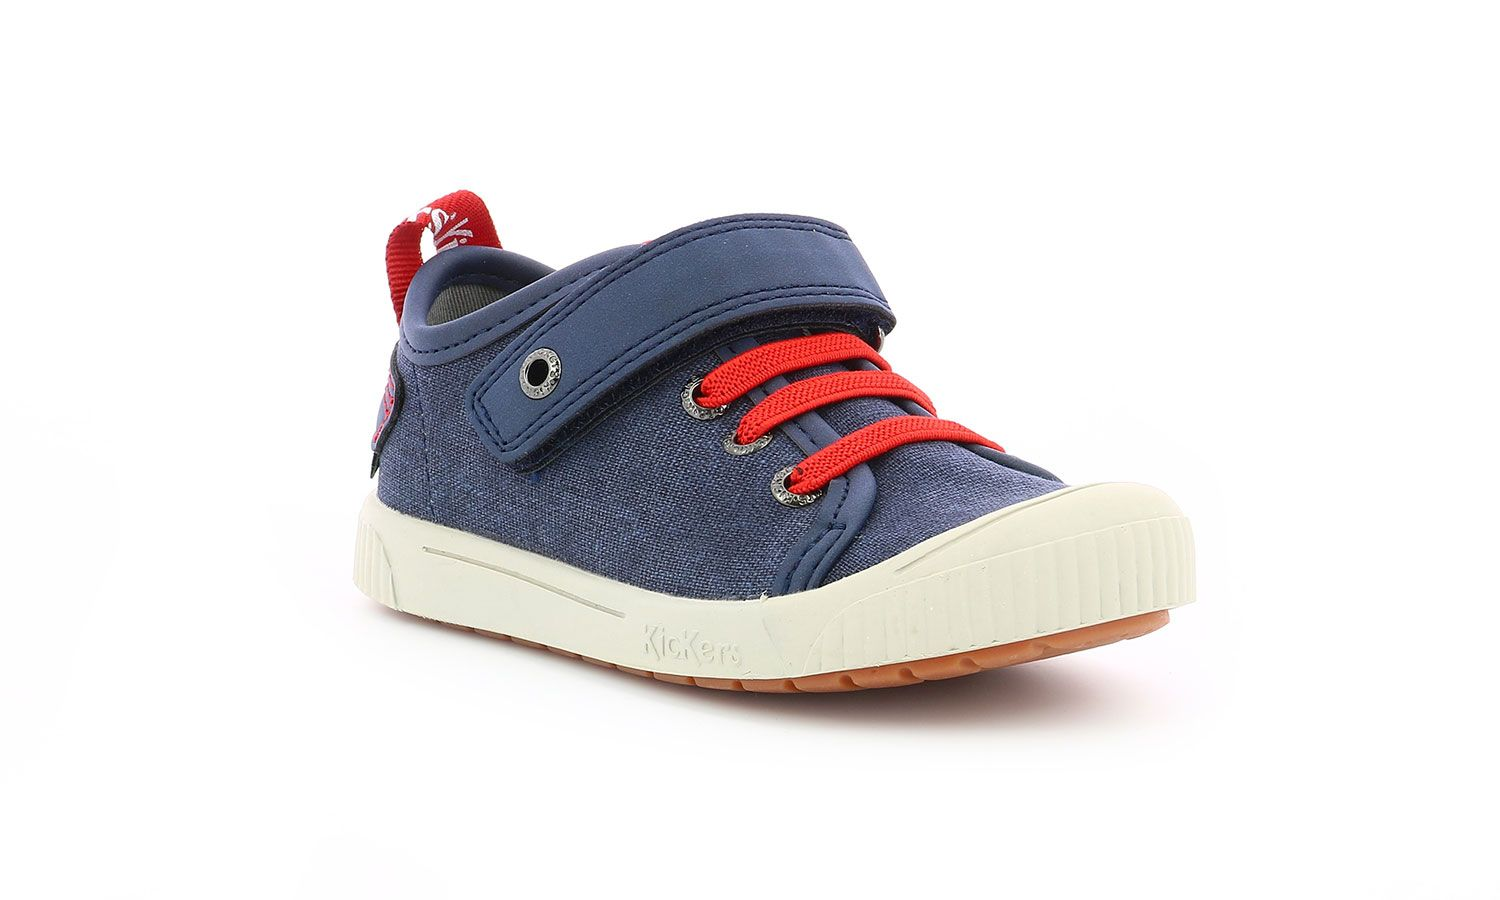 Chaussures Kickers ZHOU MARINE ROUGE Kids and co